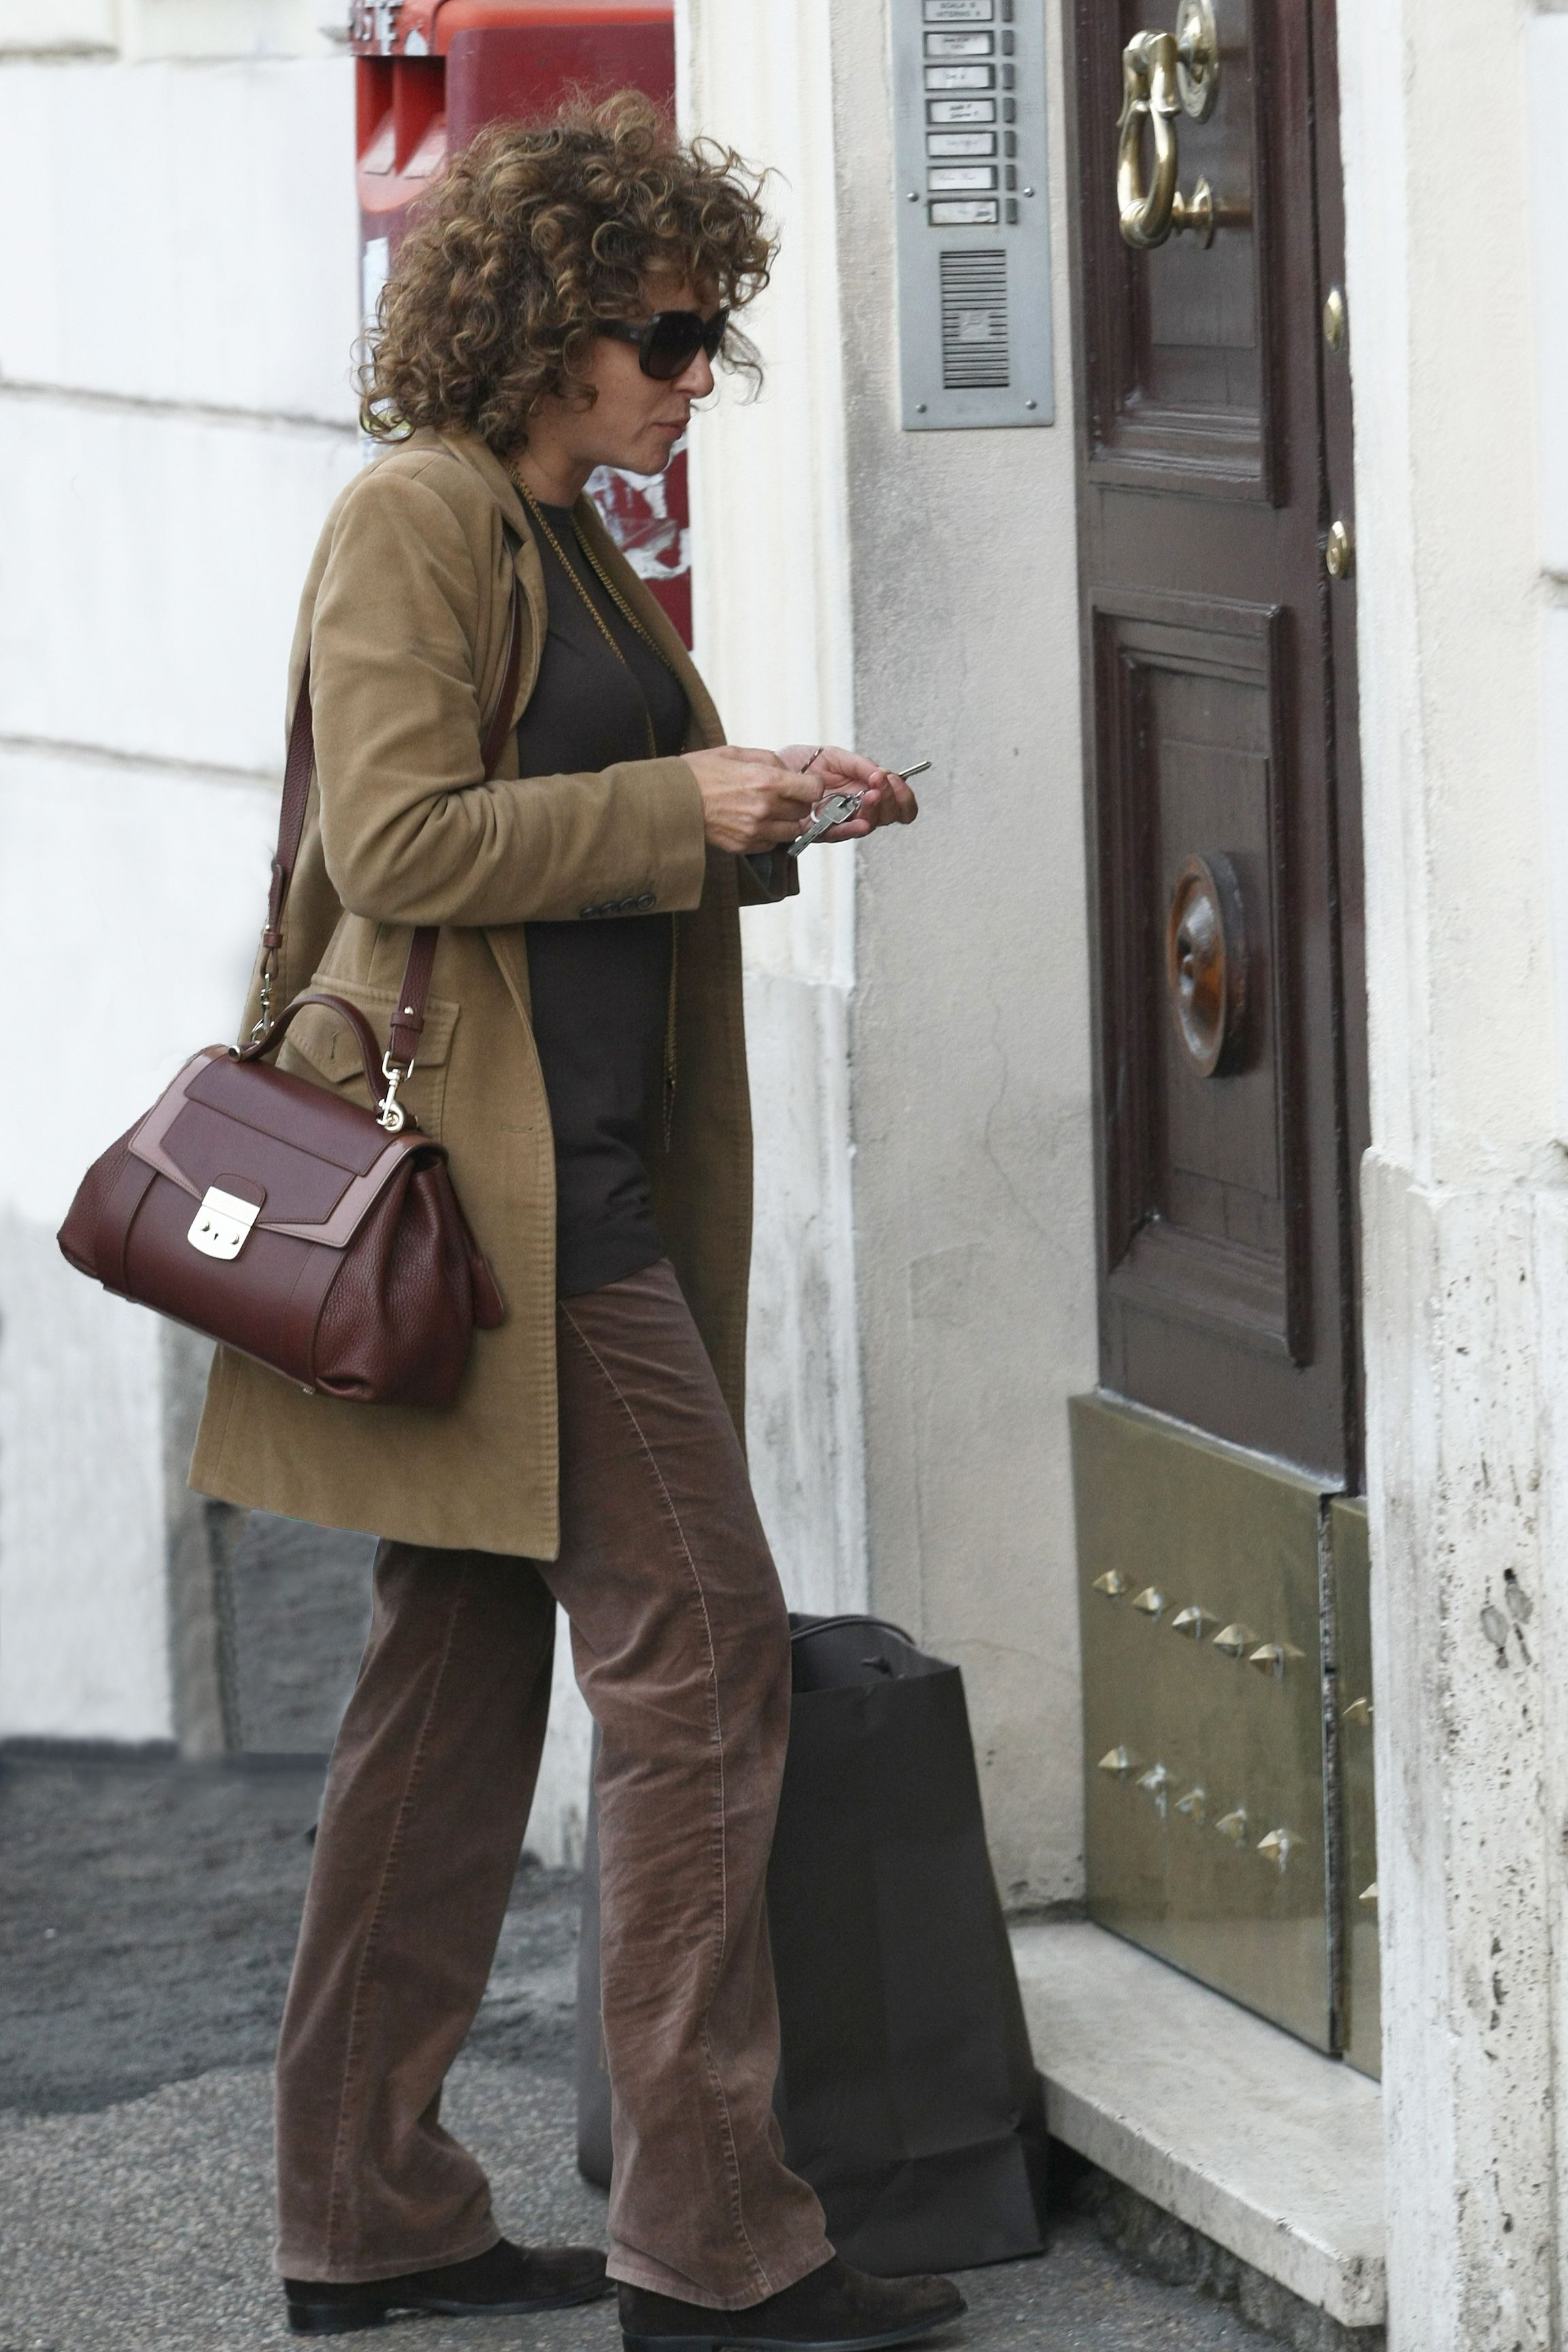 Valeria golino celebrities in trussardi pinterest boutique delivery and celebrity Celebrity style fashion boutique